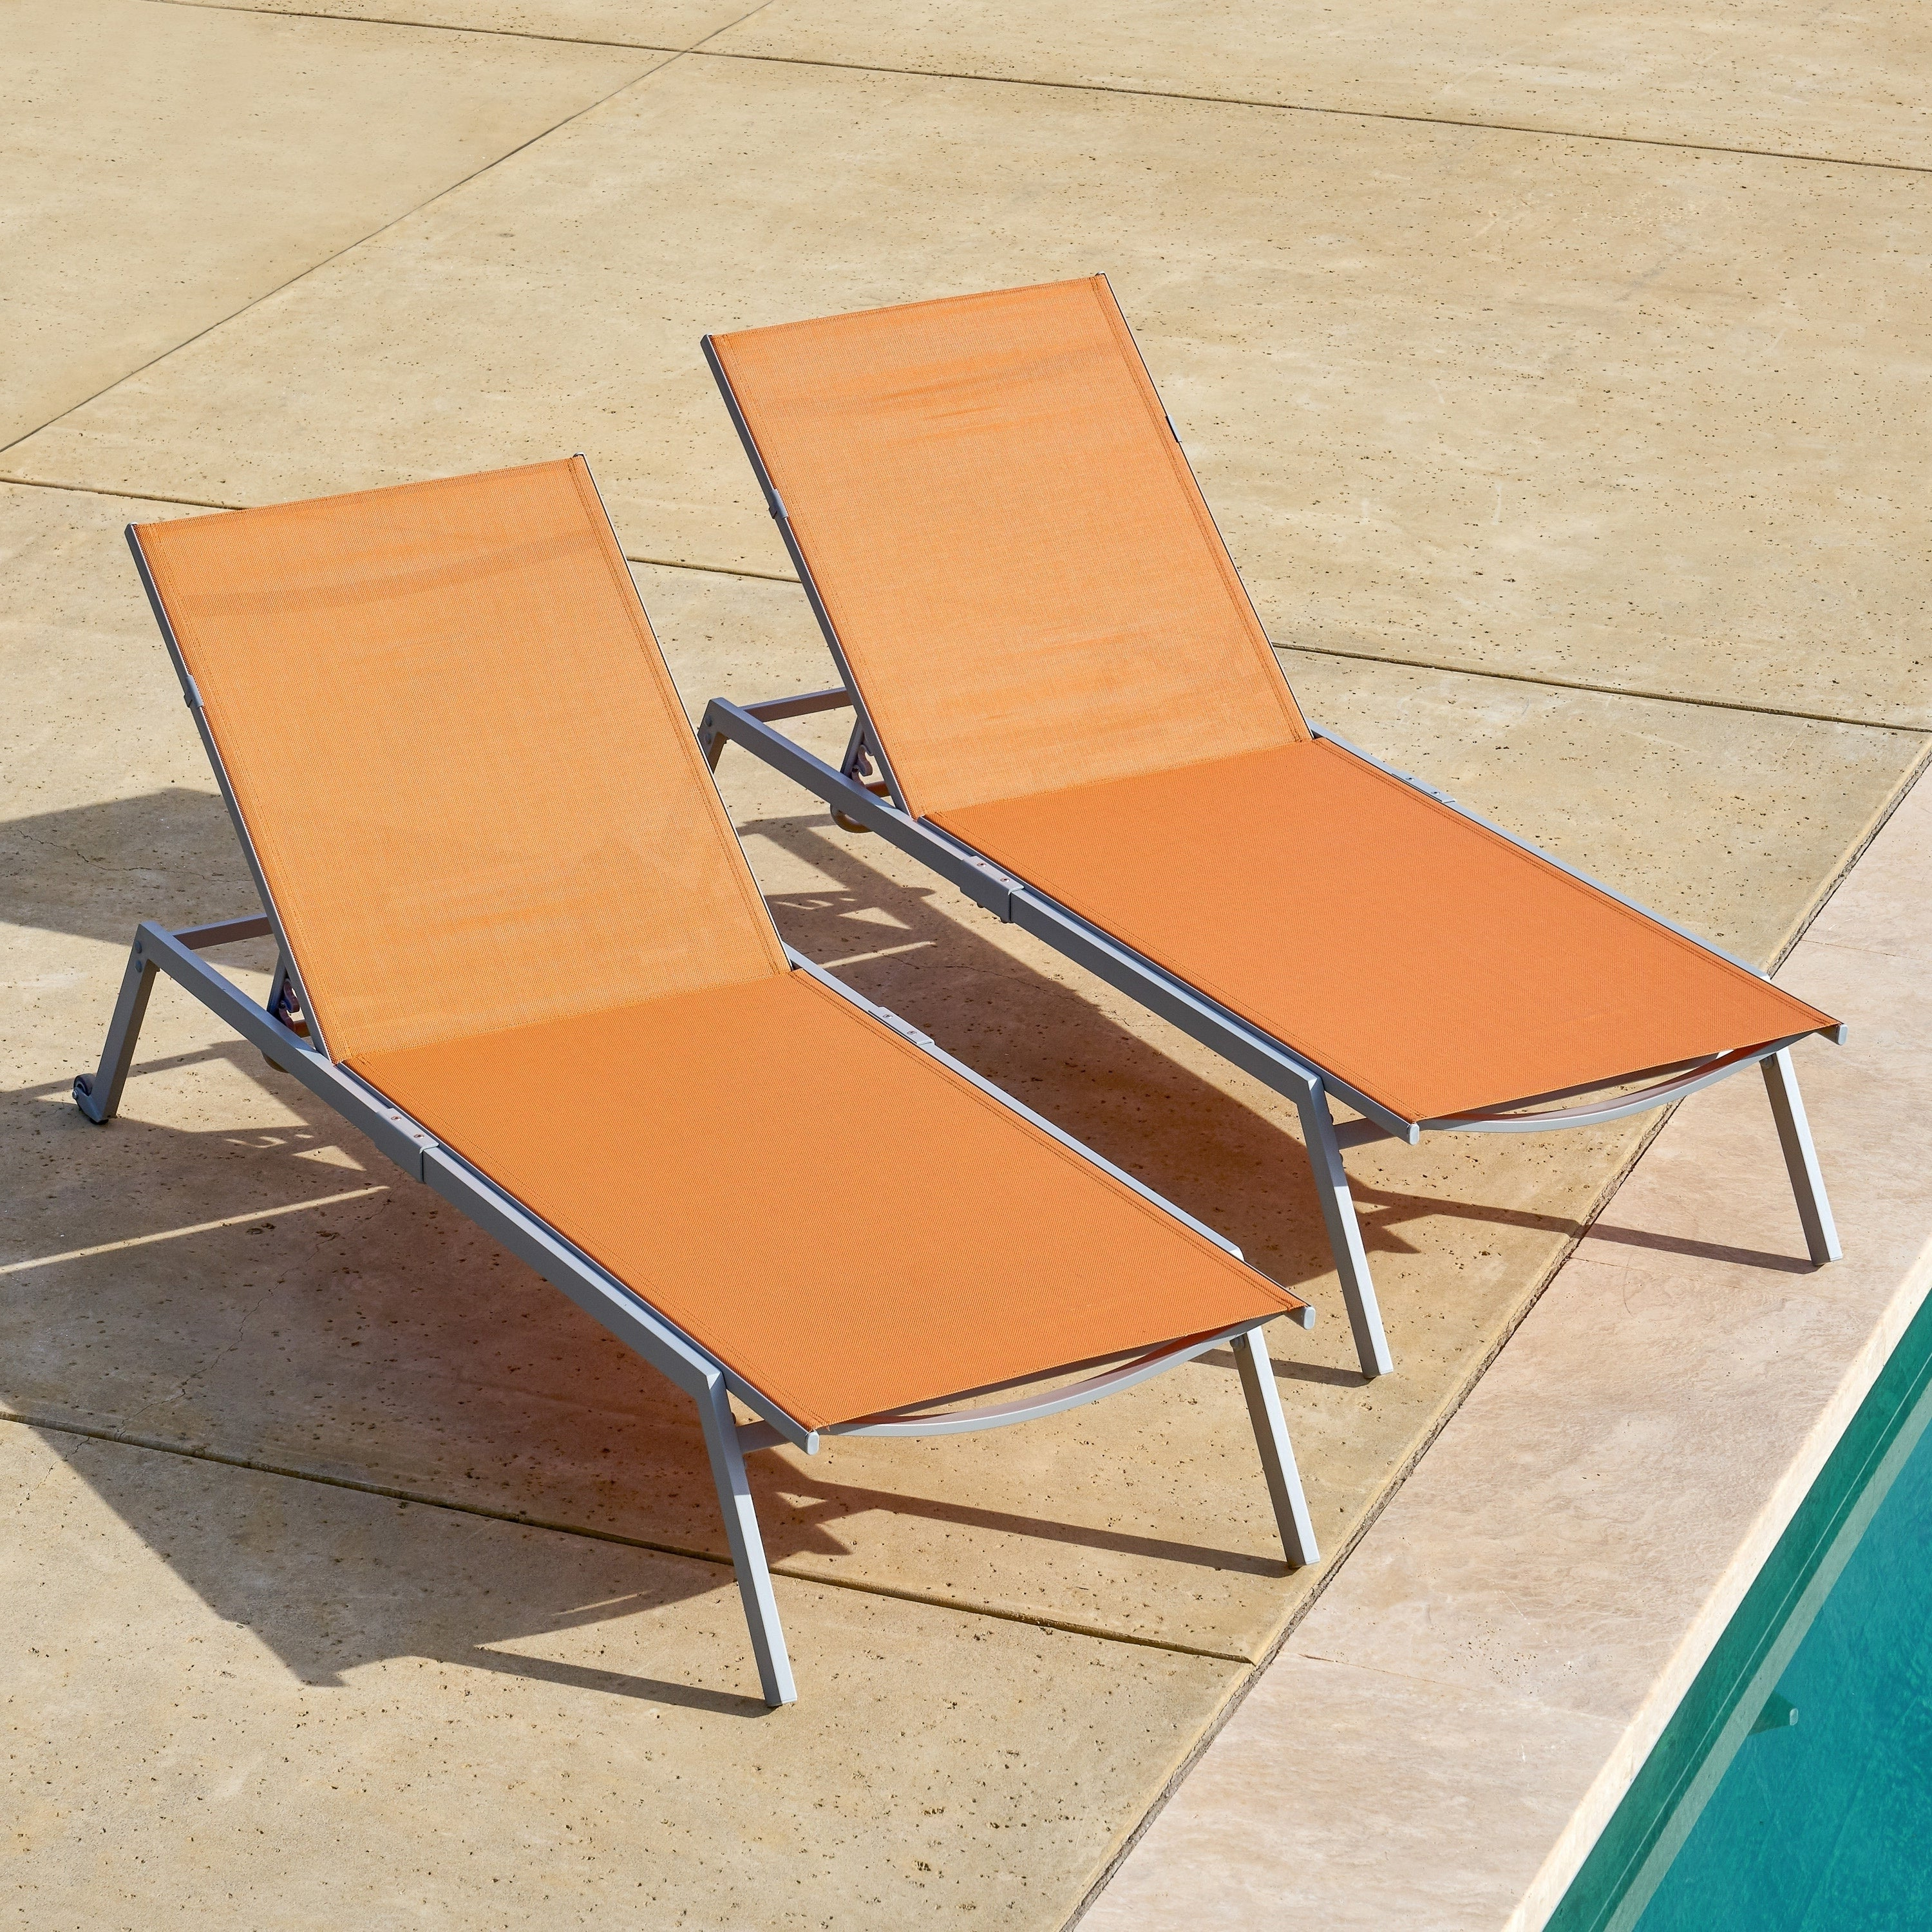 Adjustable Sling Fabric Patio Chaise Lounges Intended For Famous Corvus Torino Adjustable Sling Fabric Patio Chaise Lounge (View 4 of 25)